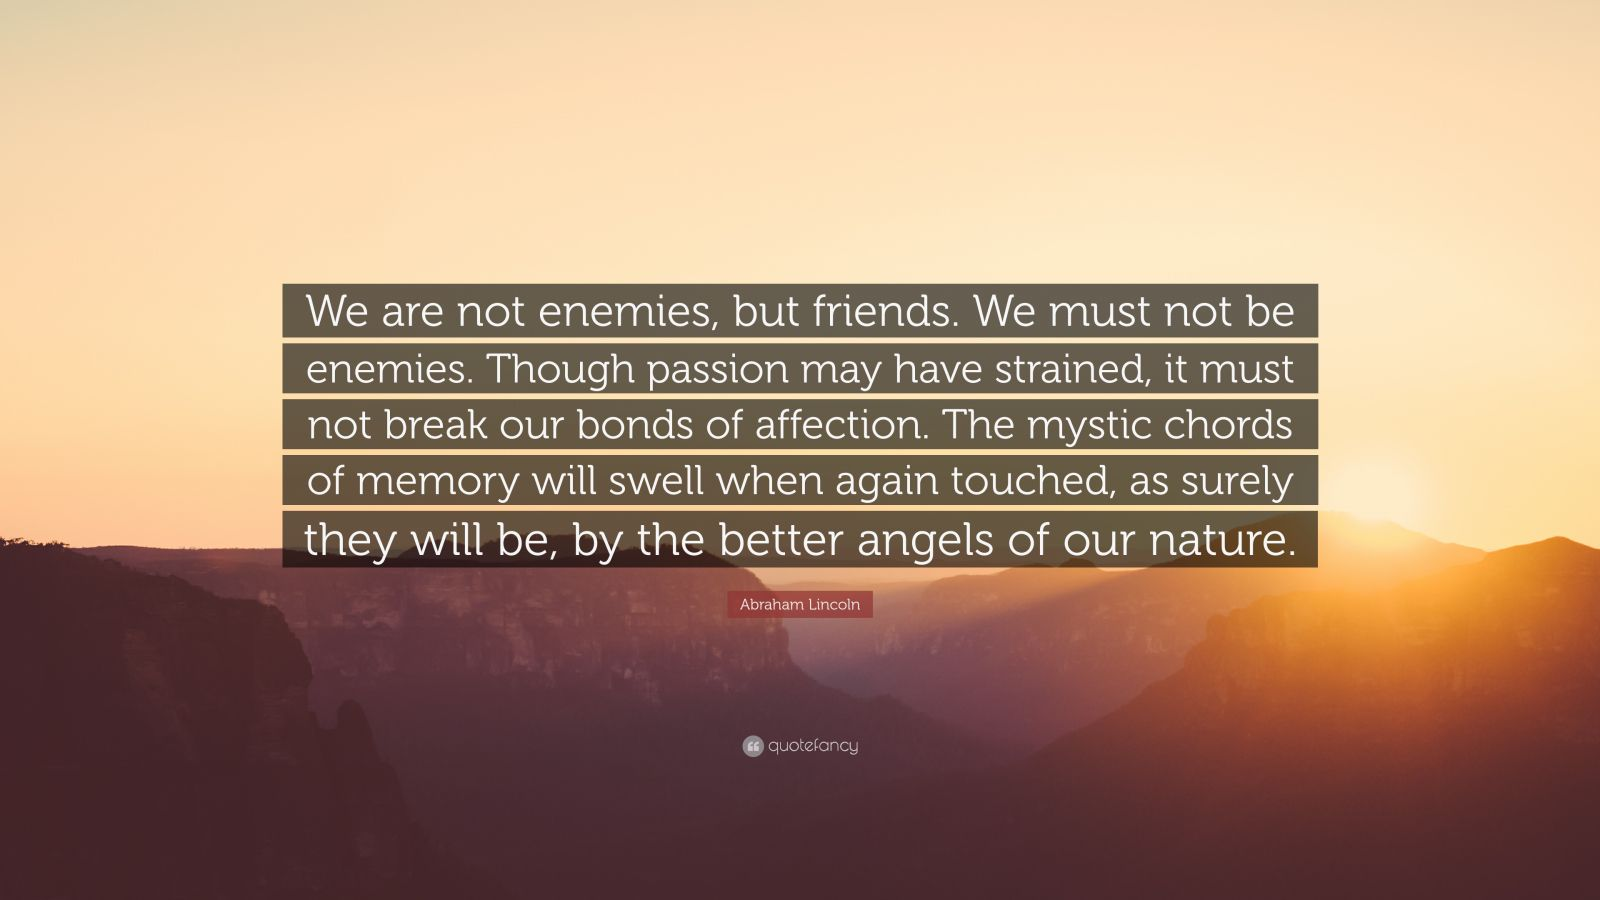 """Abraham Lincoln Quote: """"We are not enemies, but friends. We must not be enemies. Though passion may have strained, it must not break our bonds of affection. The mystic chords of memory will swell when again touched, as surely they will be, by the better angels of our nature."""""""